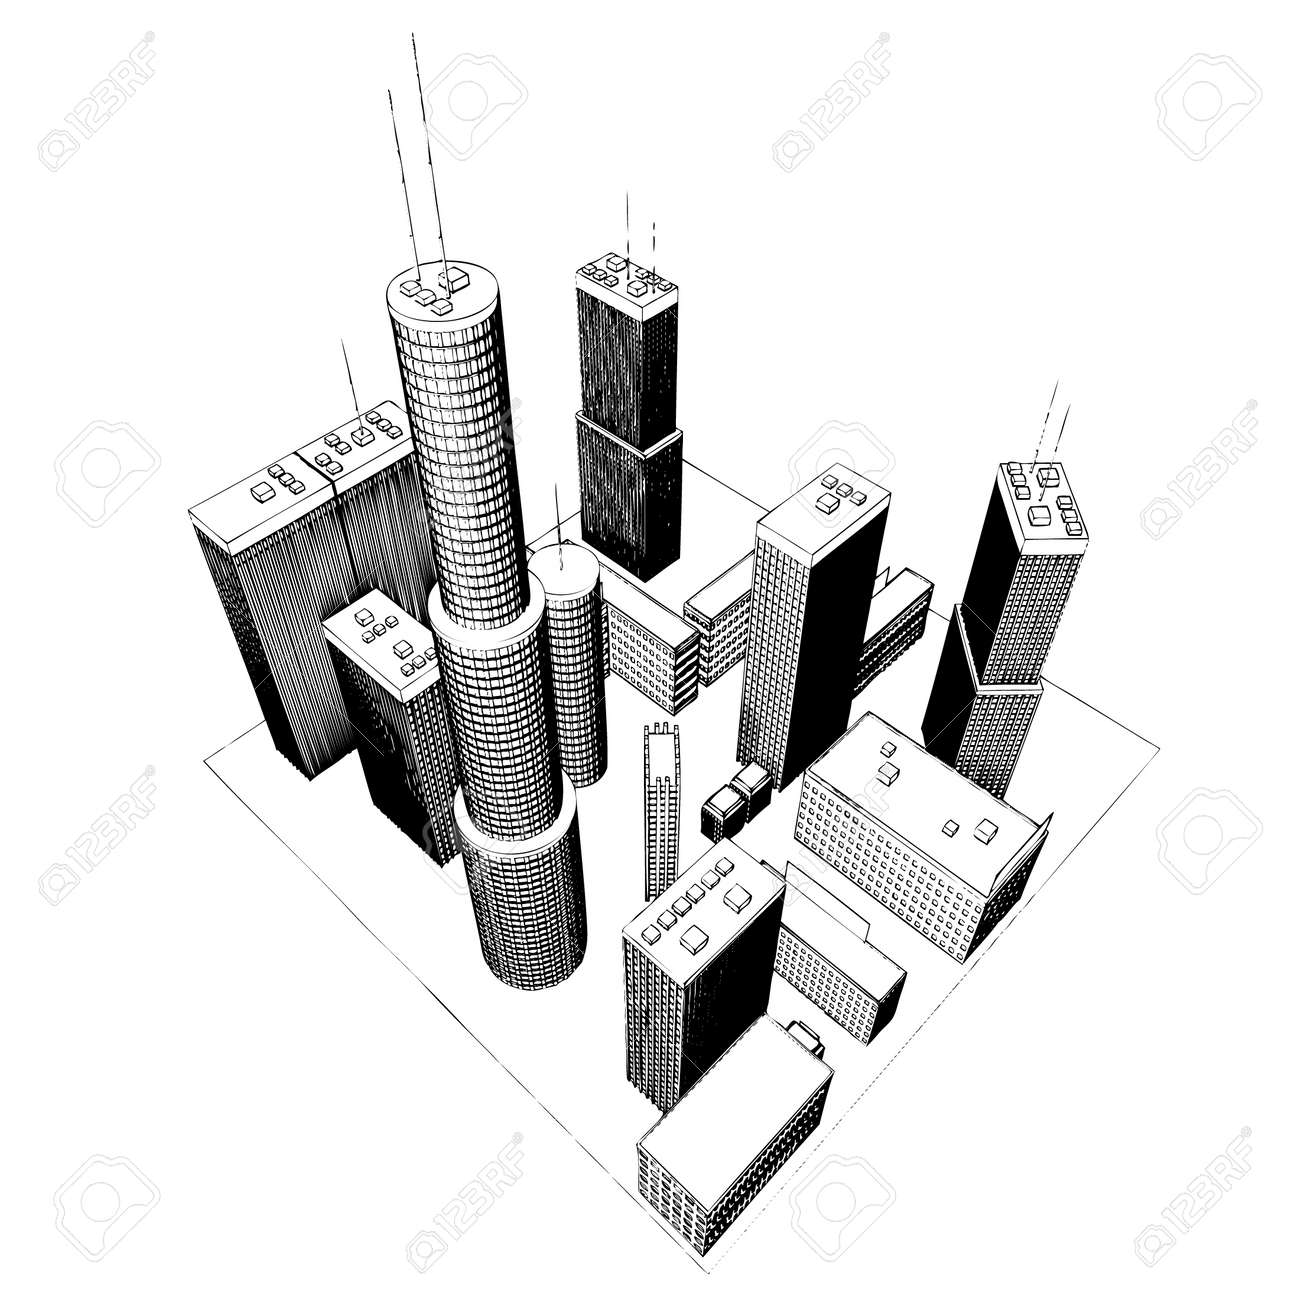 isolated big skyscrapers on white background #4 (vector illustration) Stock Vector - 1697113